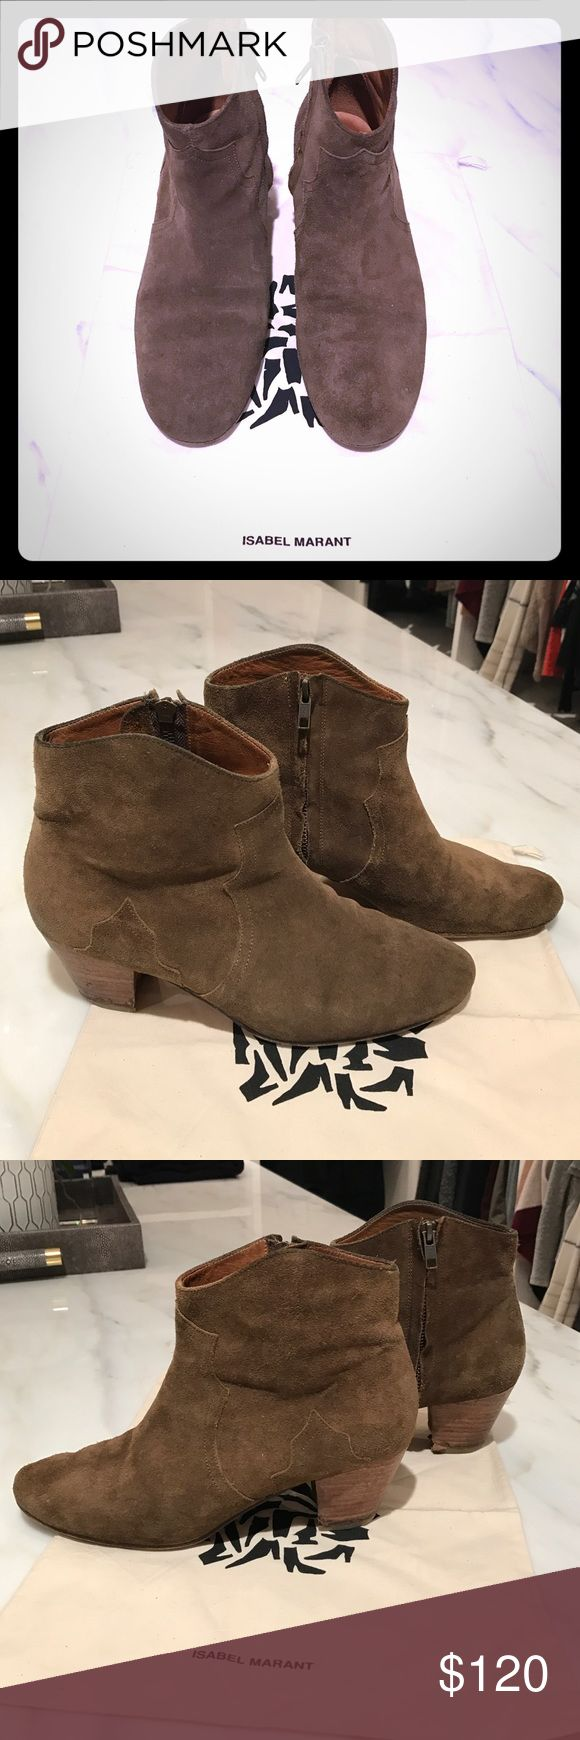 Isabel Marant Dicker Boots Brown Isabel Marant Suede Dicker Boots. Bought in 2016, has some wear on suede, but not noticeable. Some wear on inside heel of right boot that could probably be fixed. Size 41, but I am a solid size 10. Isabel Marant Shoes Ankle Boots & Booties